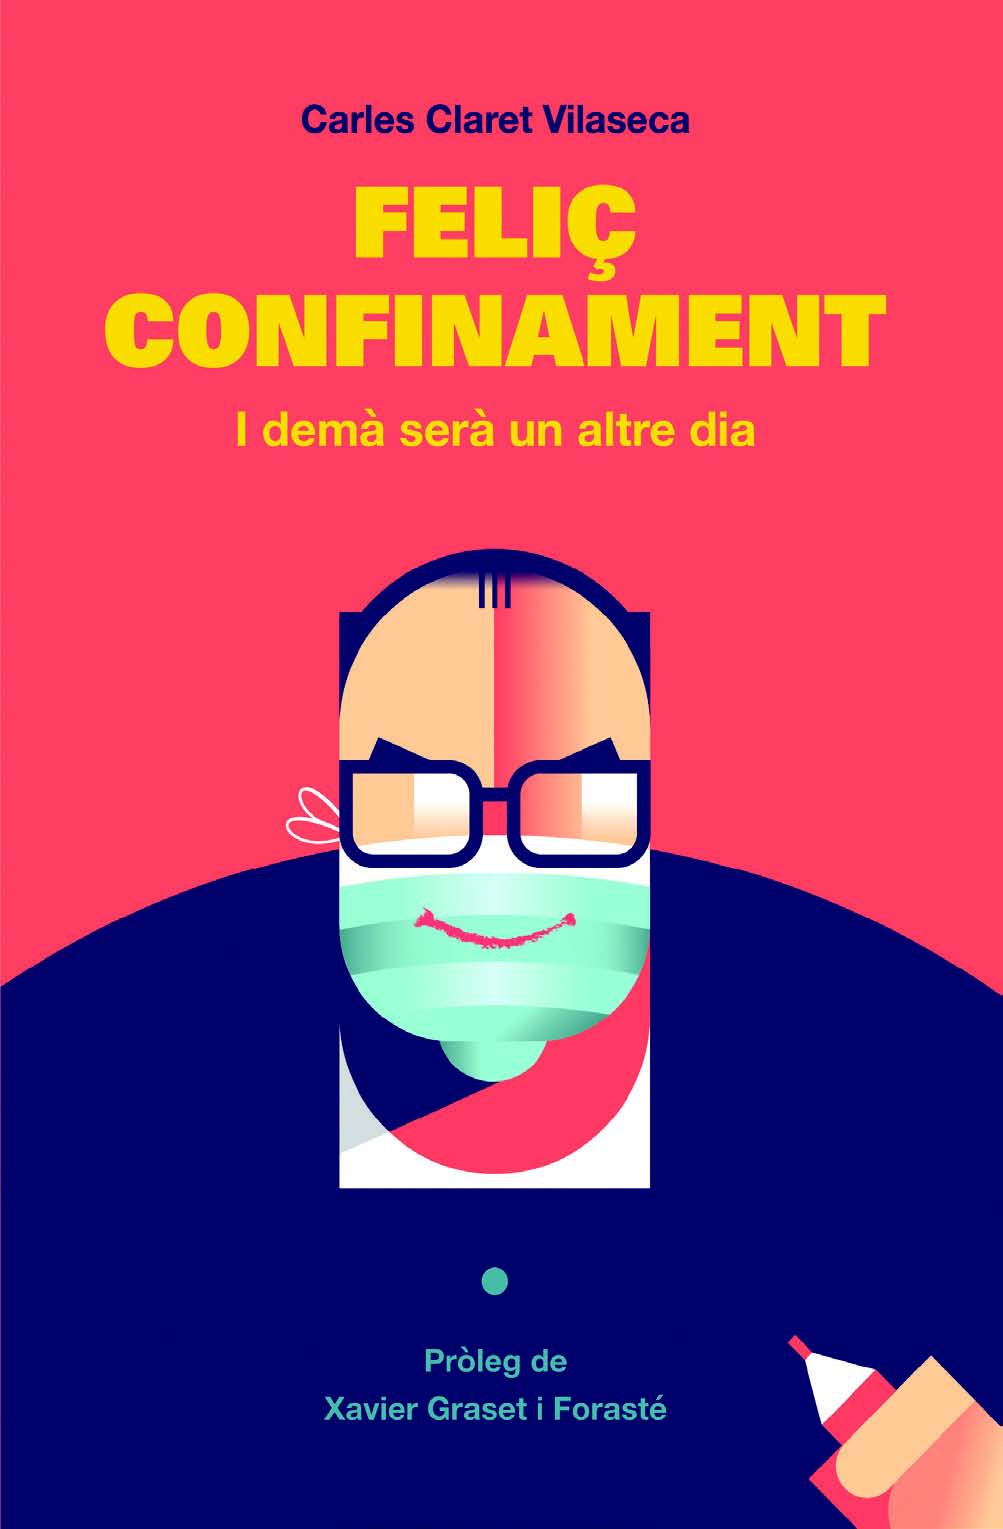 Feliç confinament